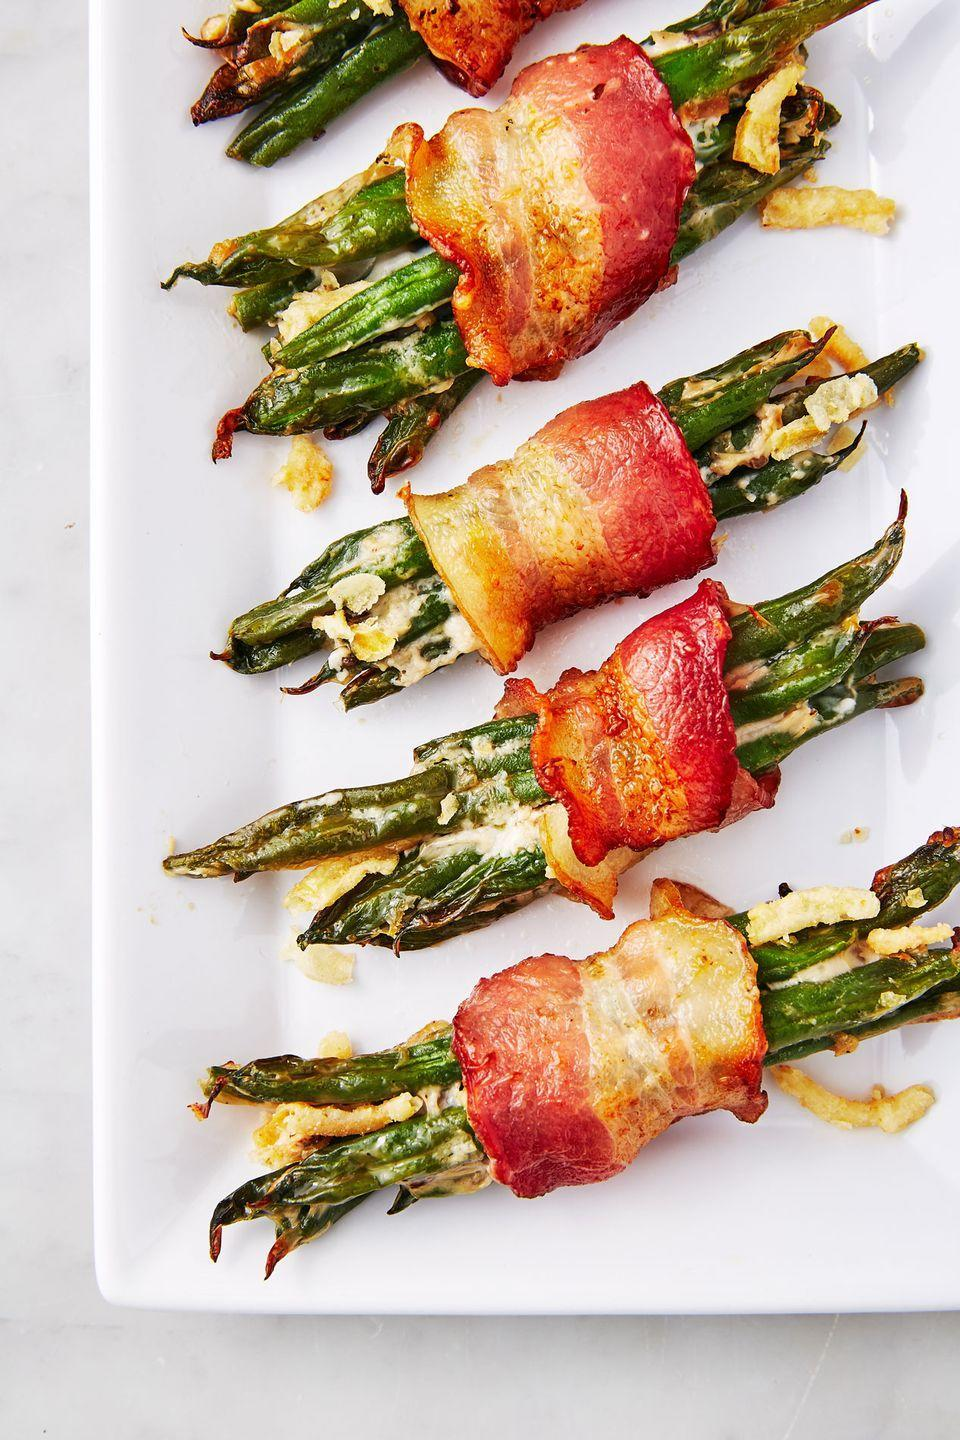 """<p>An individual portion of bacon? Yes please!</p><p>Get the recipe from <a href=""""https://www.delish.com/cooking/recipe-ideas/recipes/a50049/green-bean-casserole-bundles-recipe/"""" rel=""""nofollow noopener"""" target=""""_blank"""" data-ylk=""""slk:Delish"""" class=""""link rapid-noclick-resp"""">Delish</a>.</p>"""